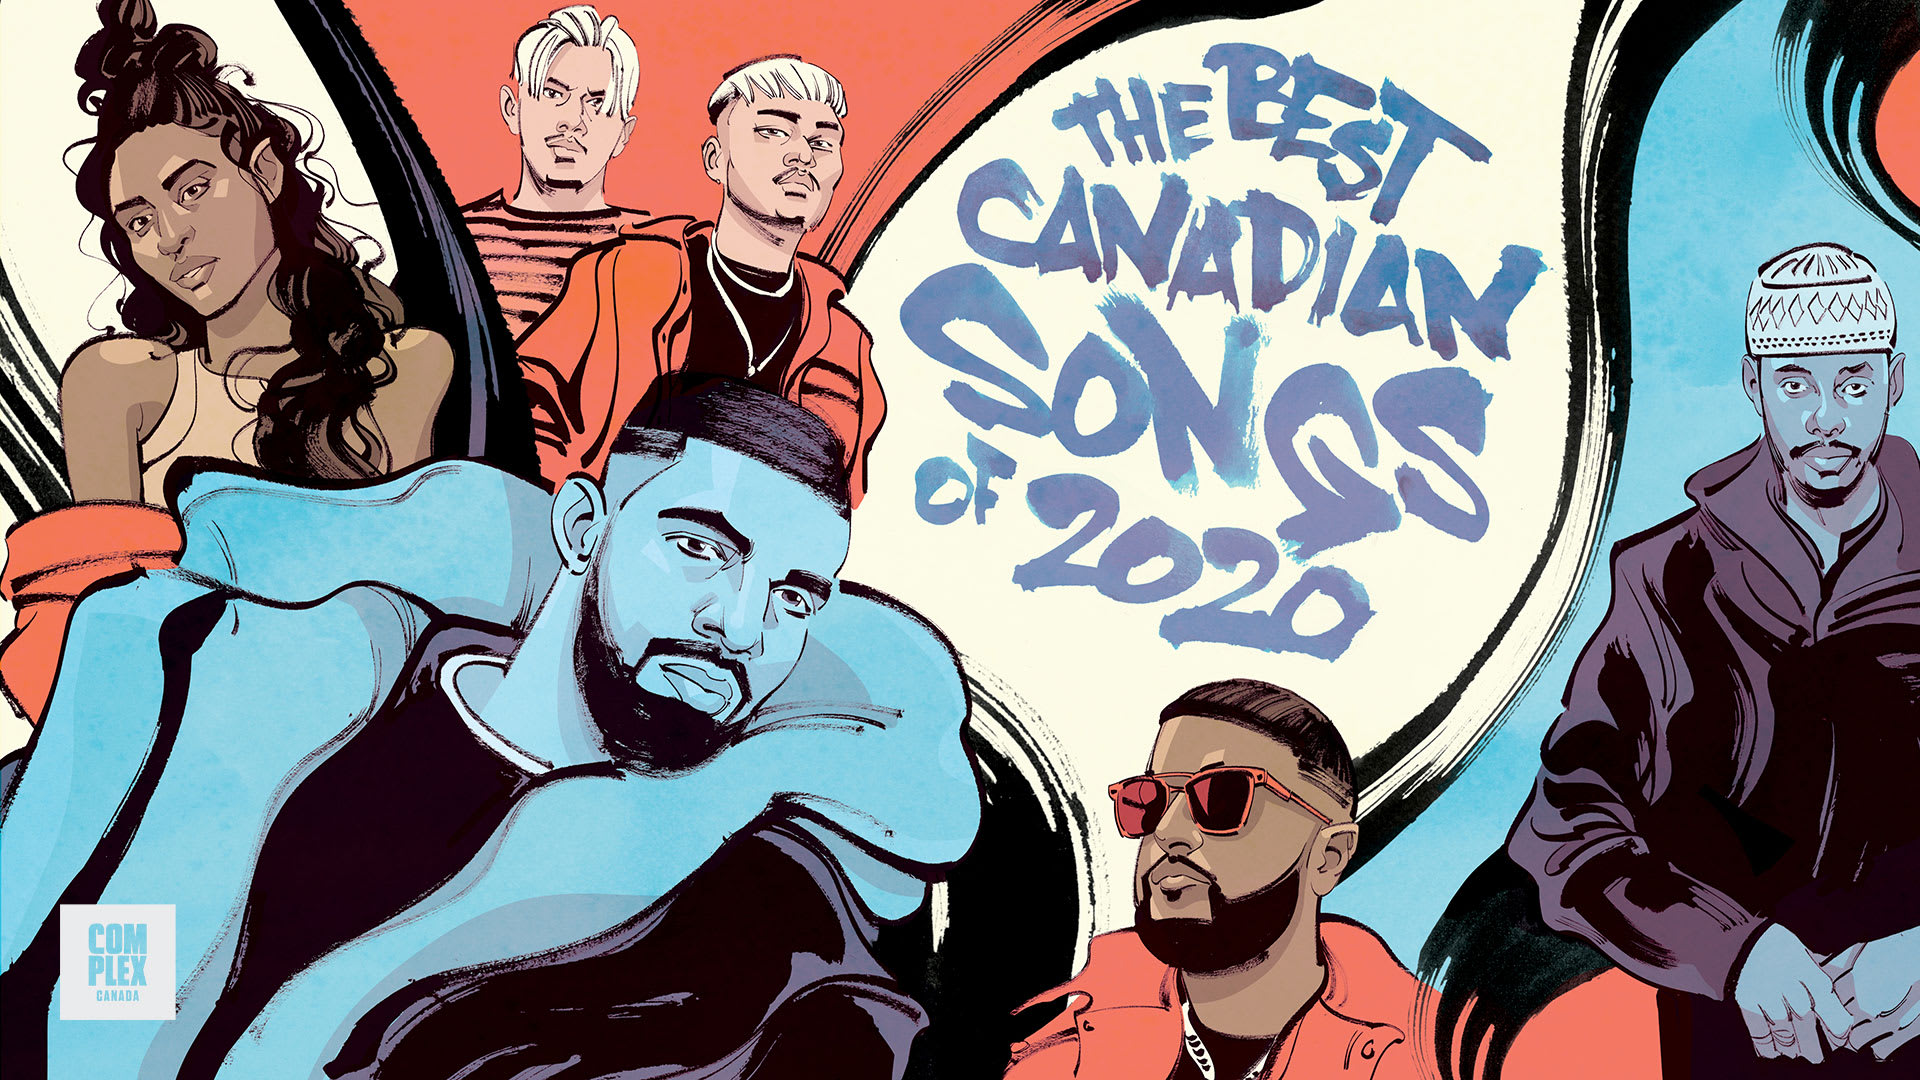 The Best Canadian Songs of 2020